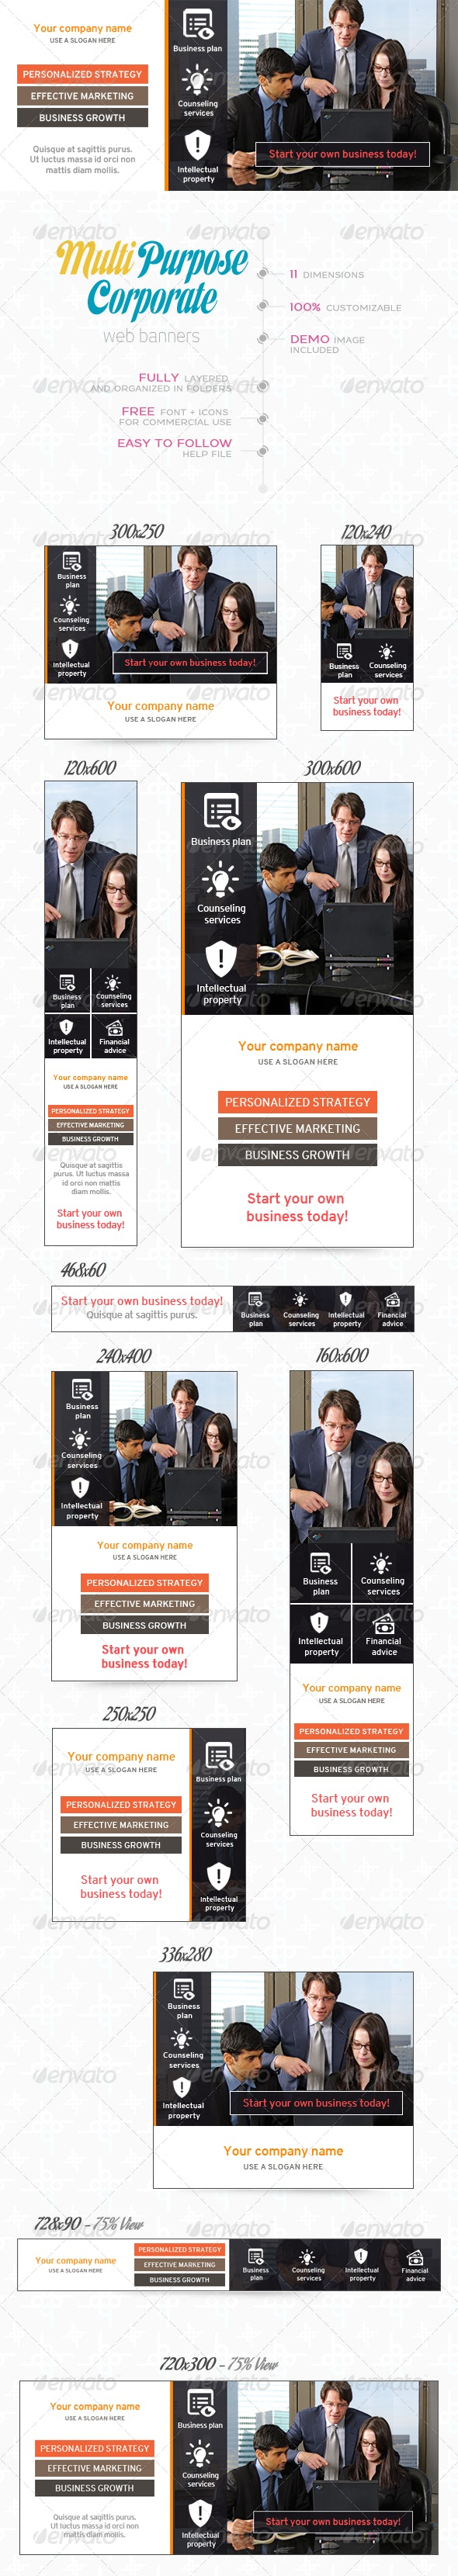 Multi Purpose Corporate Banner Set - Banners & Ads Web Elements